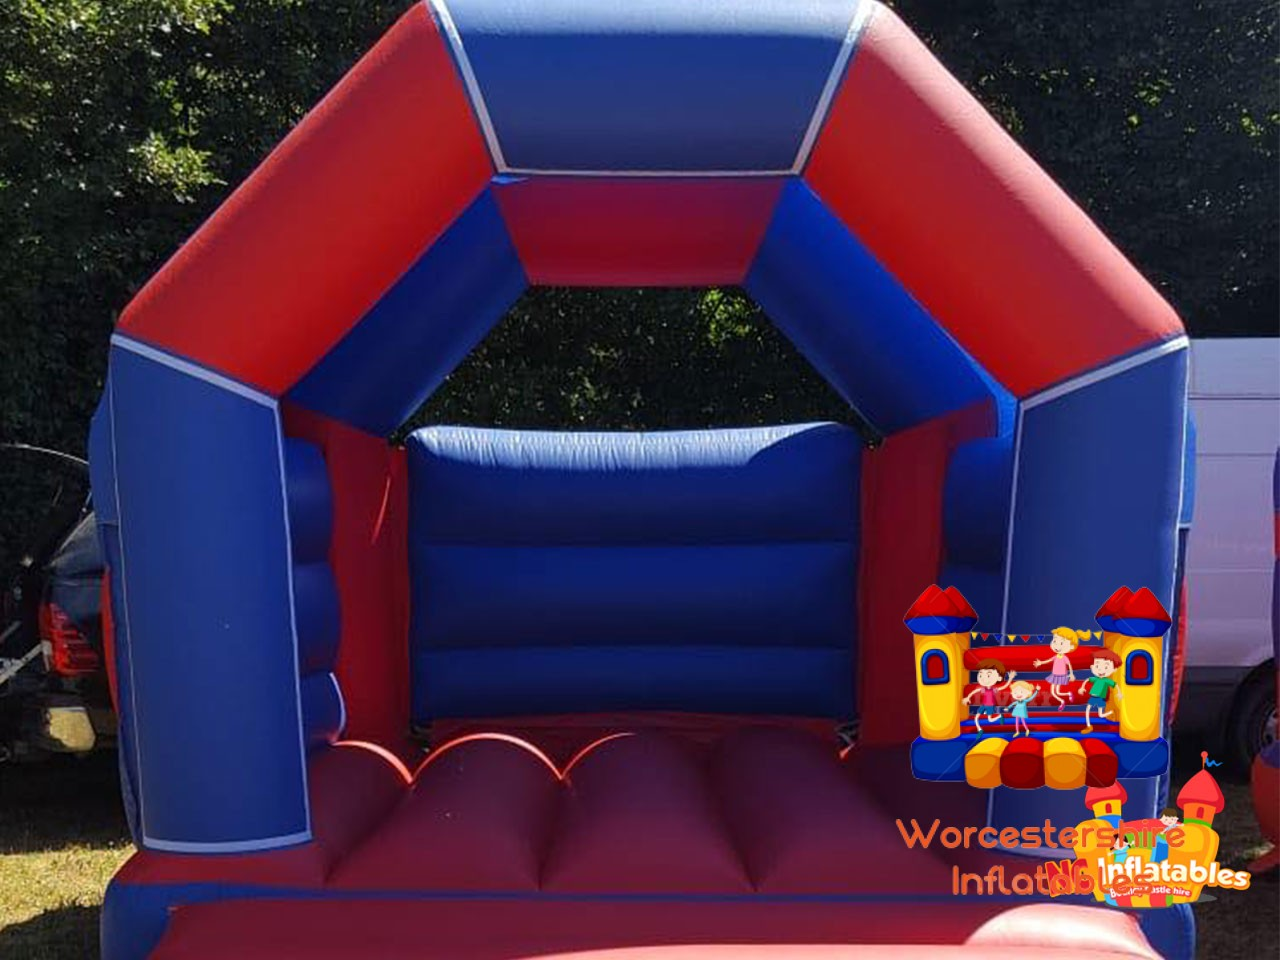 bouncy castle - Worcestershire Inflatables